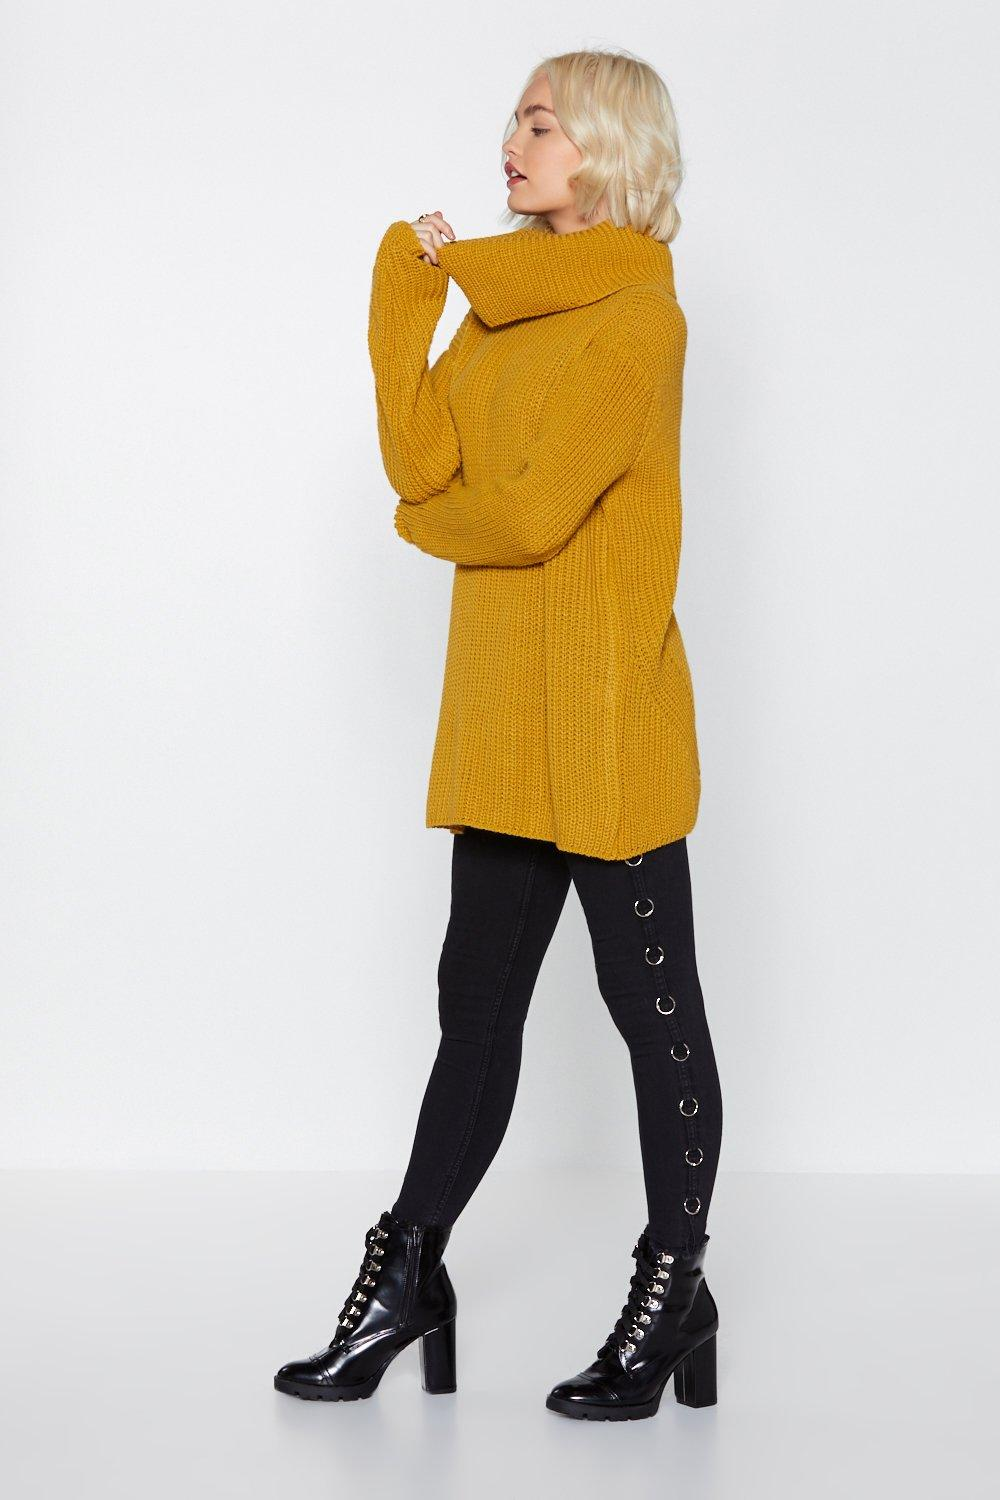 Over And Out Turtleneck Sweater Shop Clothes At Nasty Gal